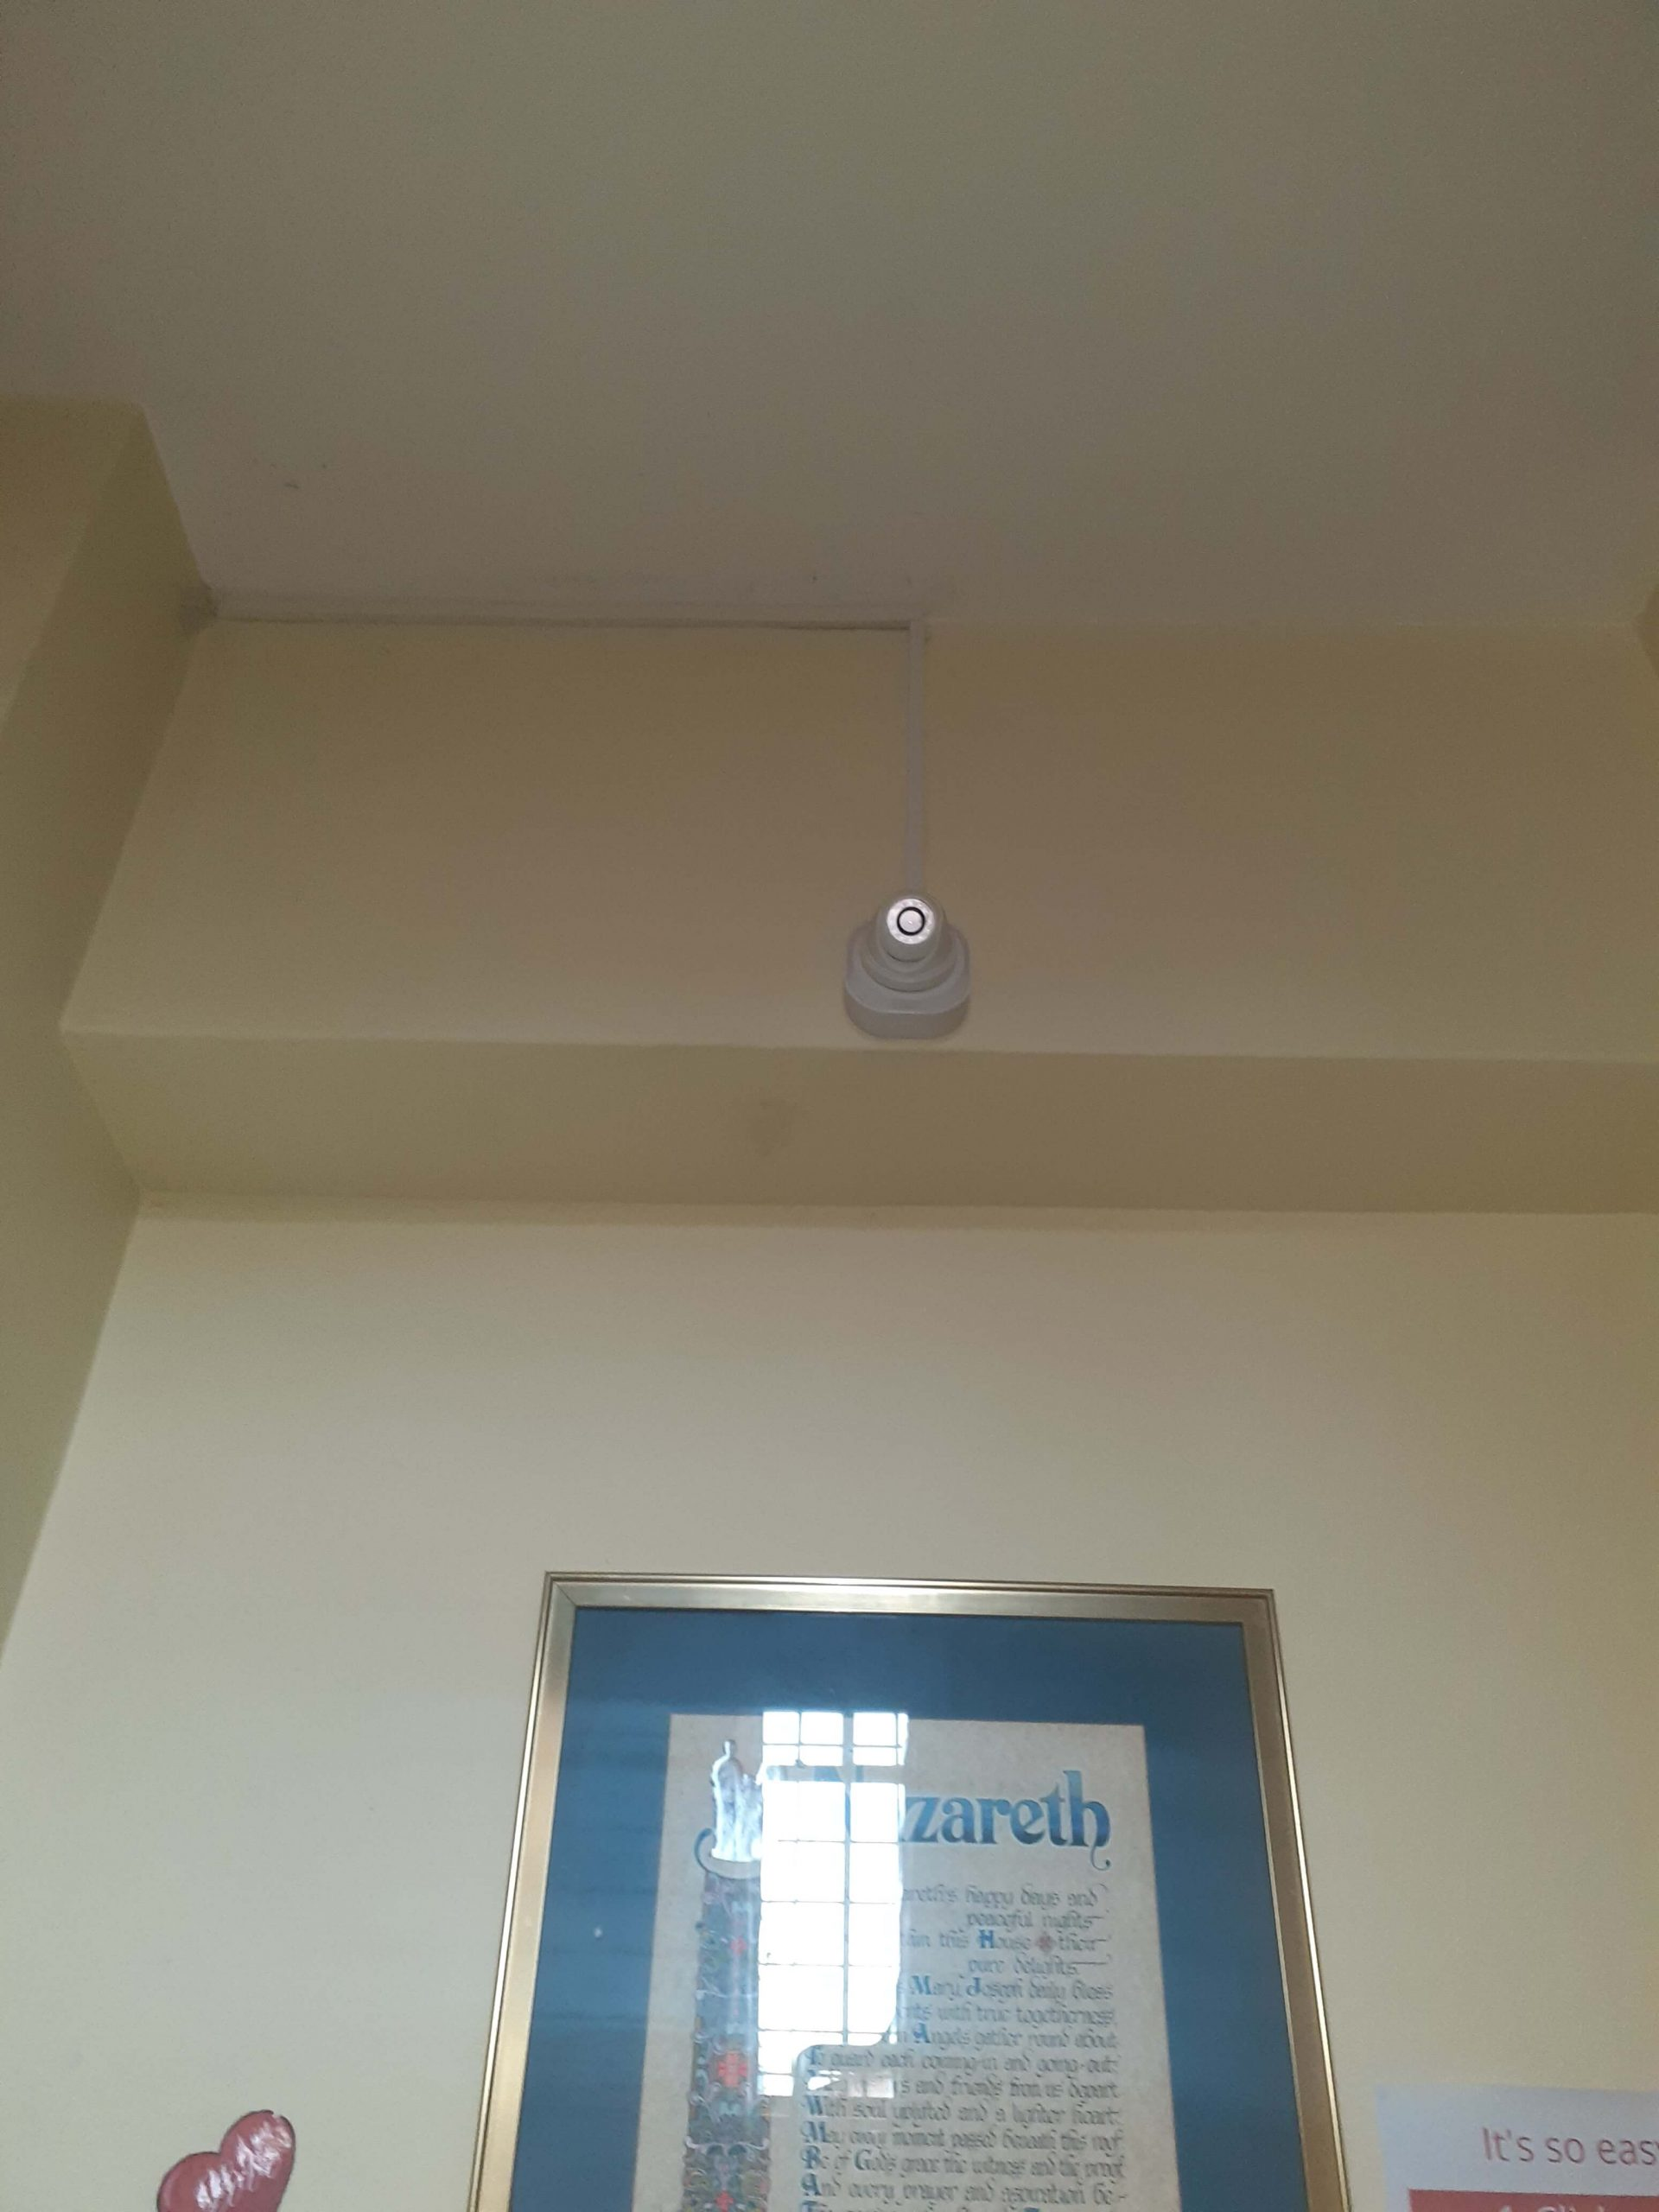 Security cameras installed - South Africa